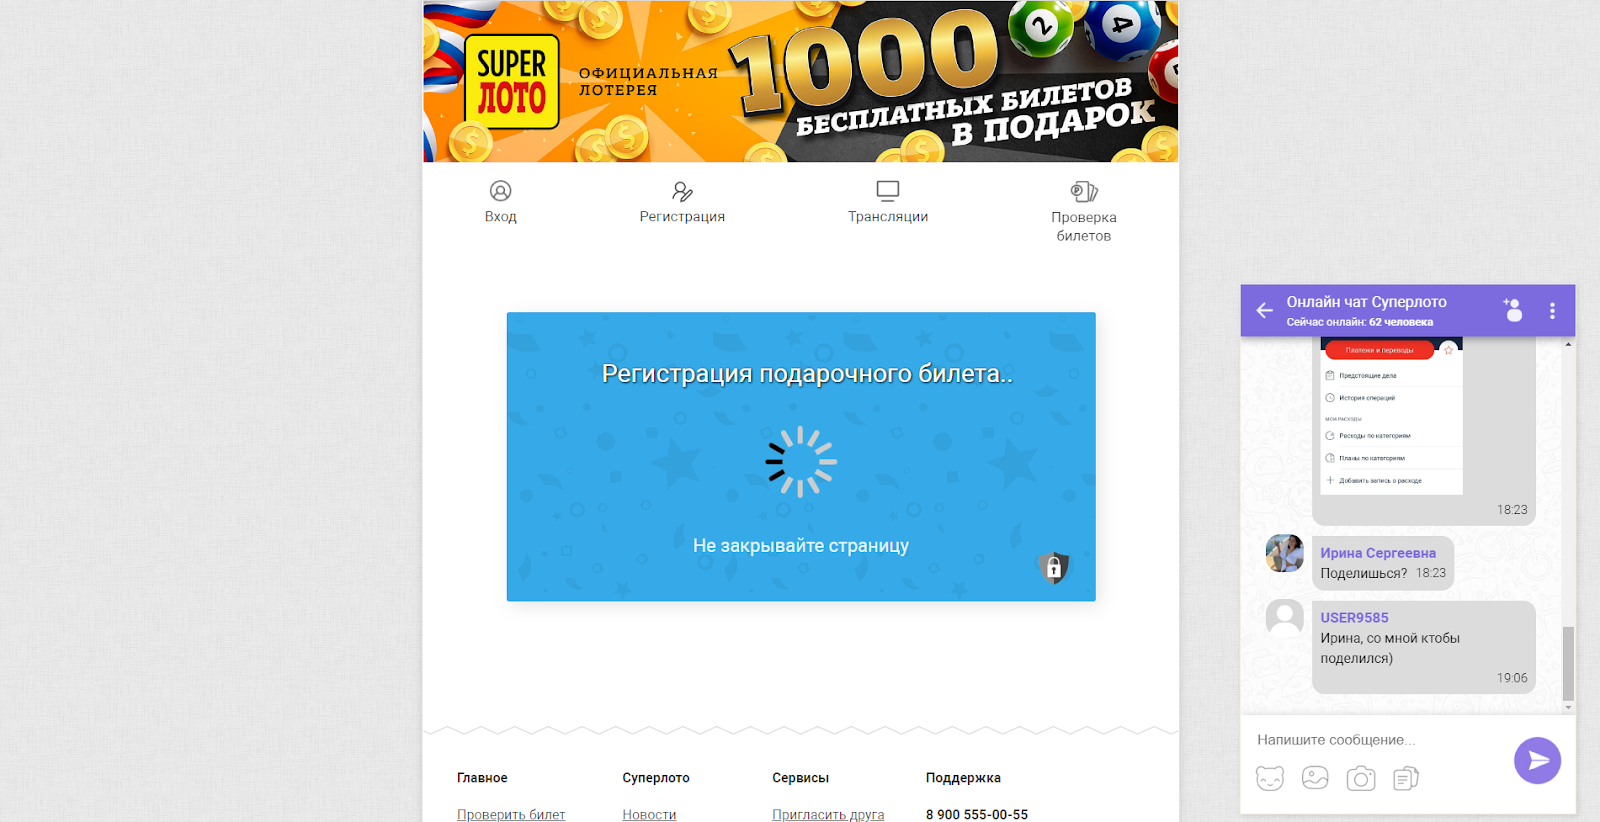 Superloto or super lottery - real reviews | Internet business